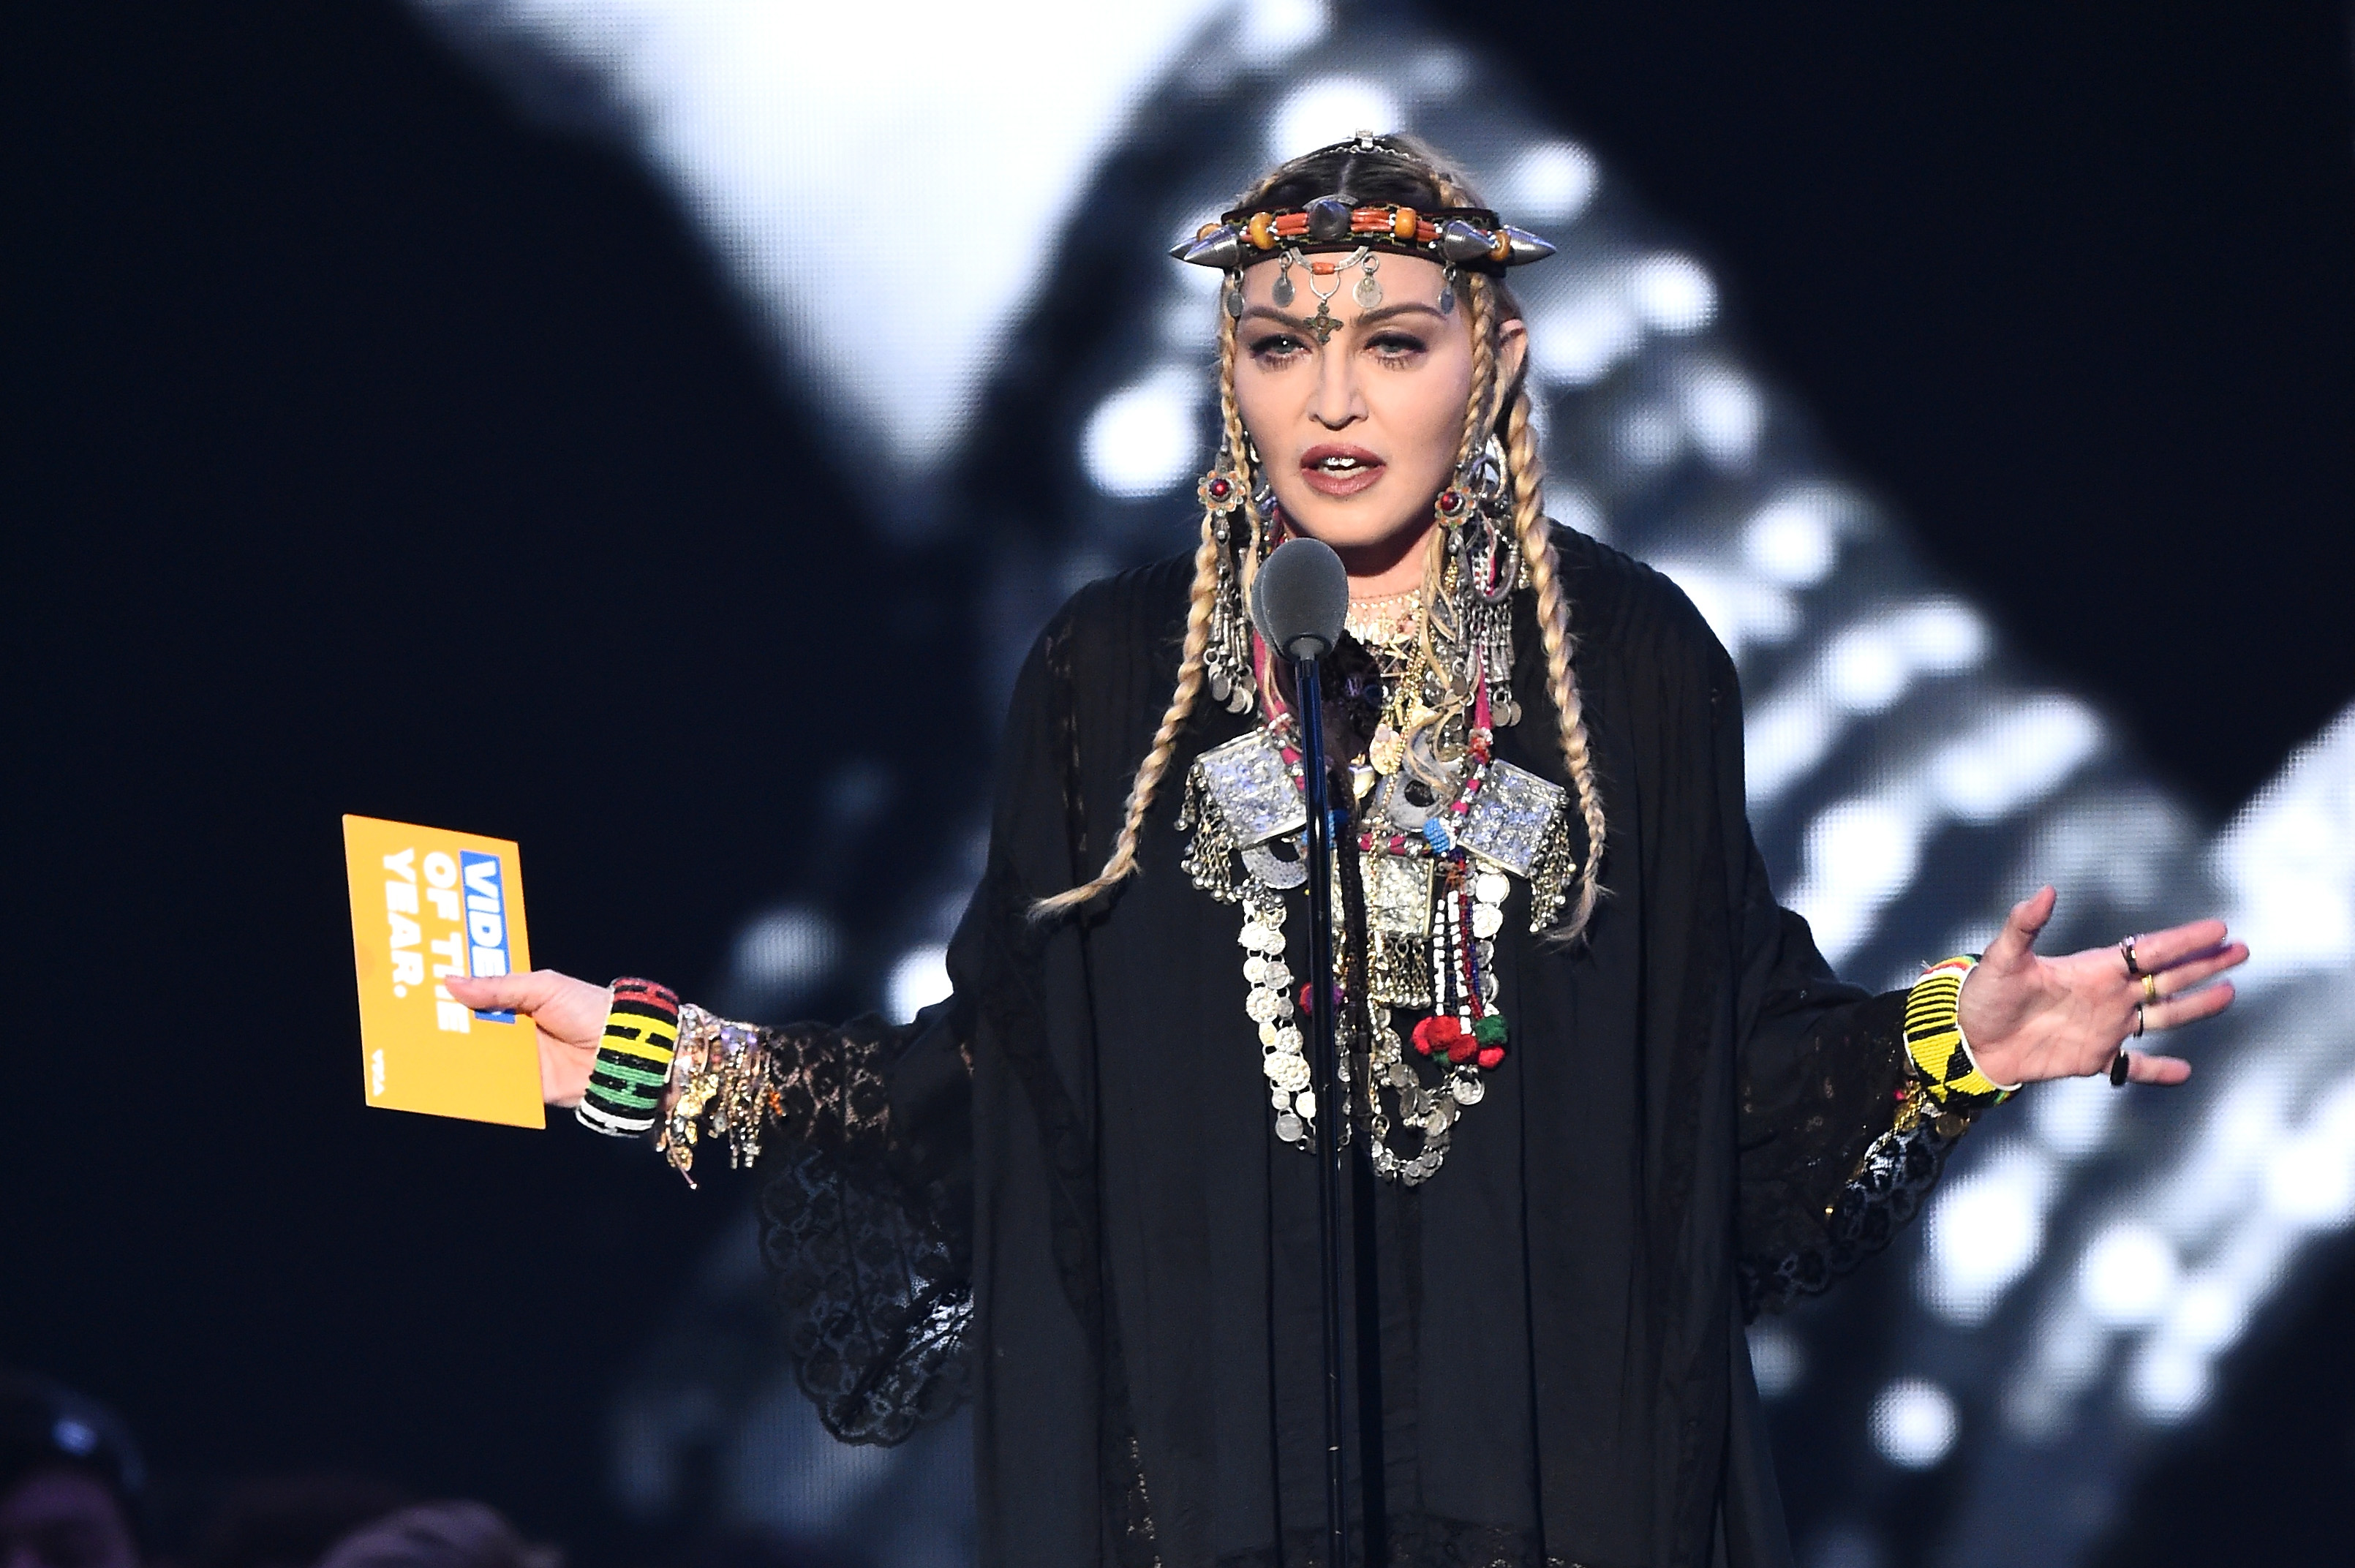 Madonna-Talks-About-Herself-During-Aretha-Franklin-Tribute-At-The-MTV-VMAs-And-Twitter-Trashes-Her